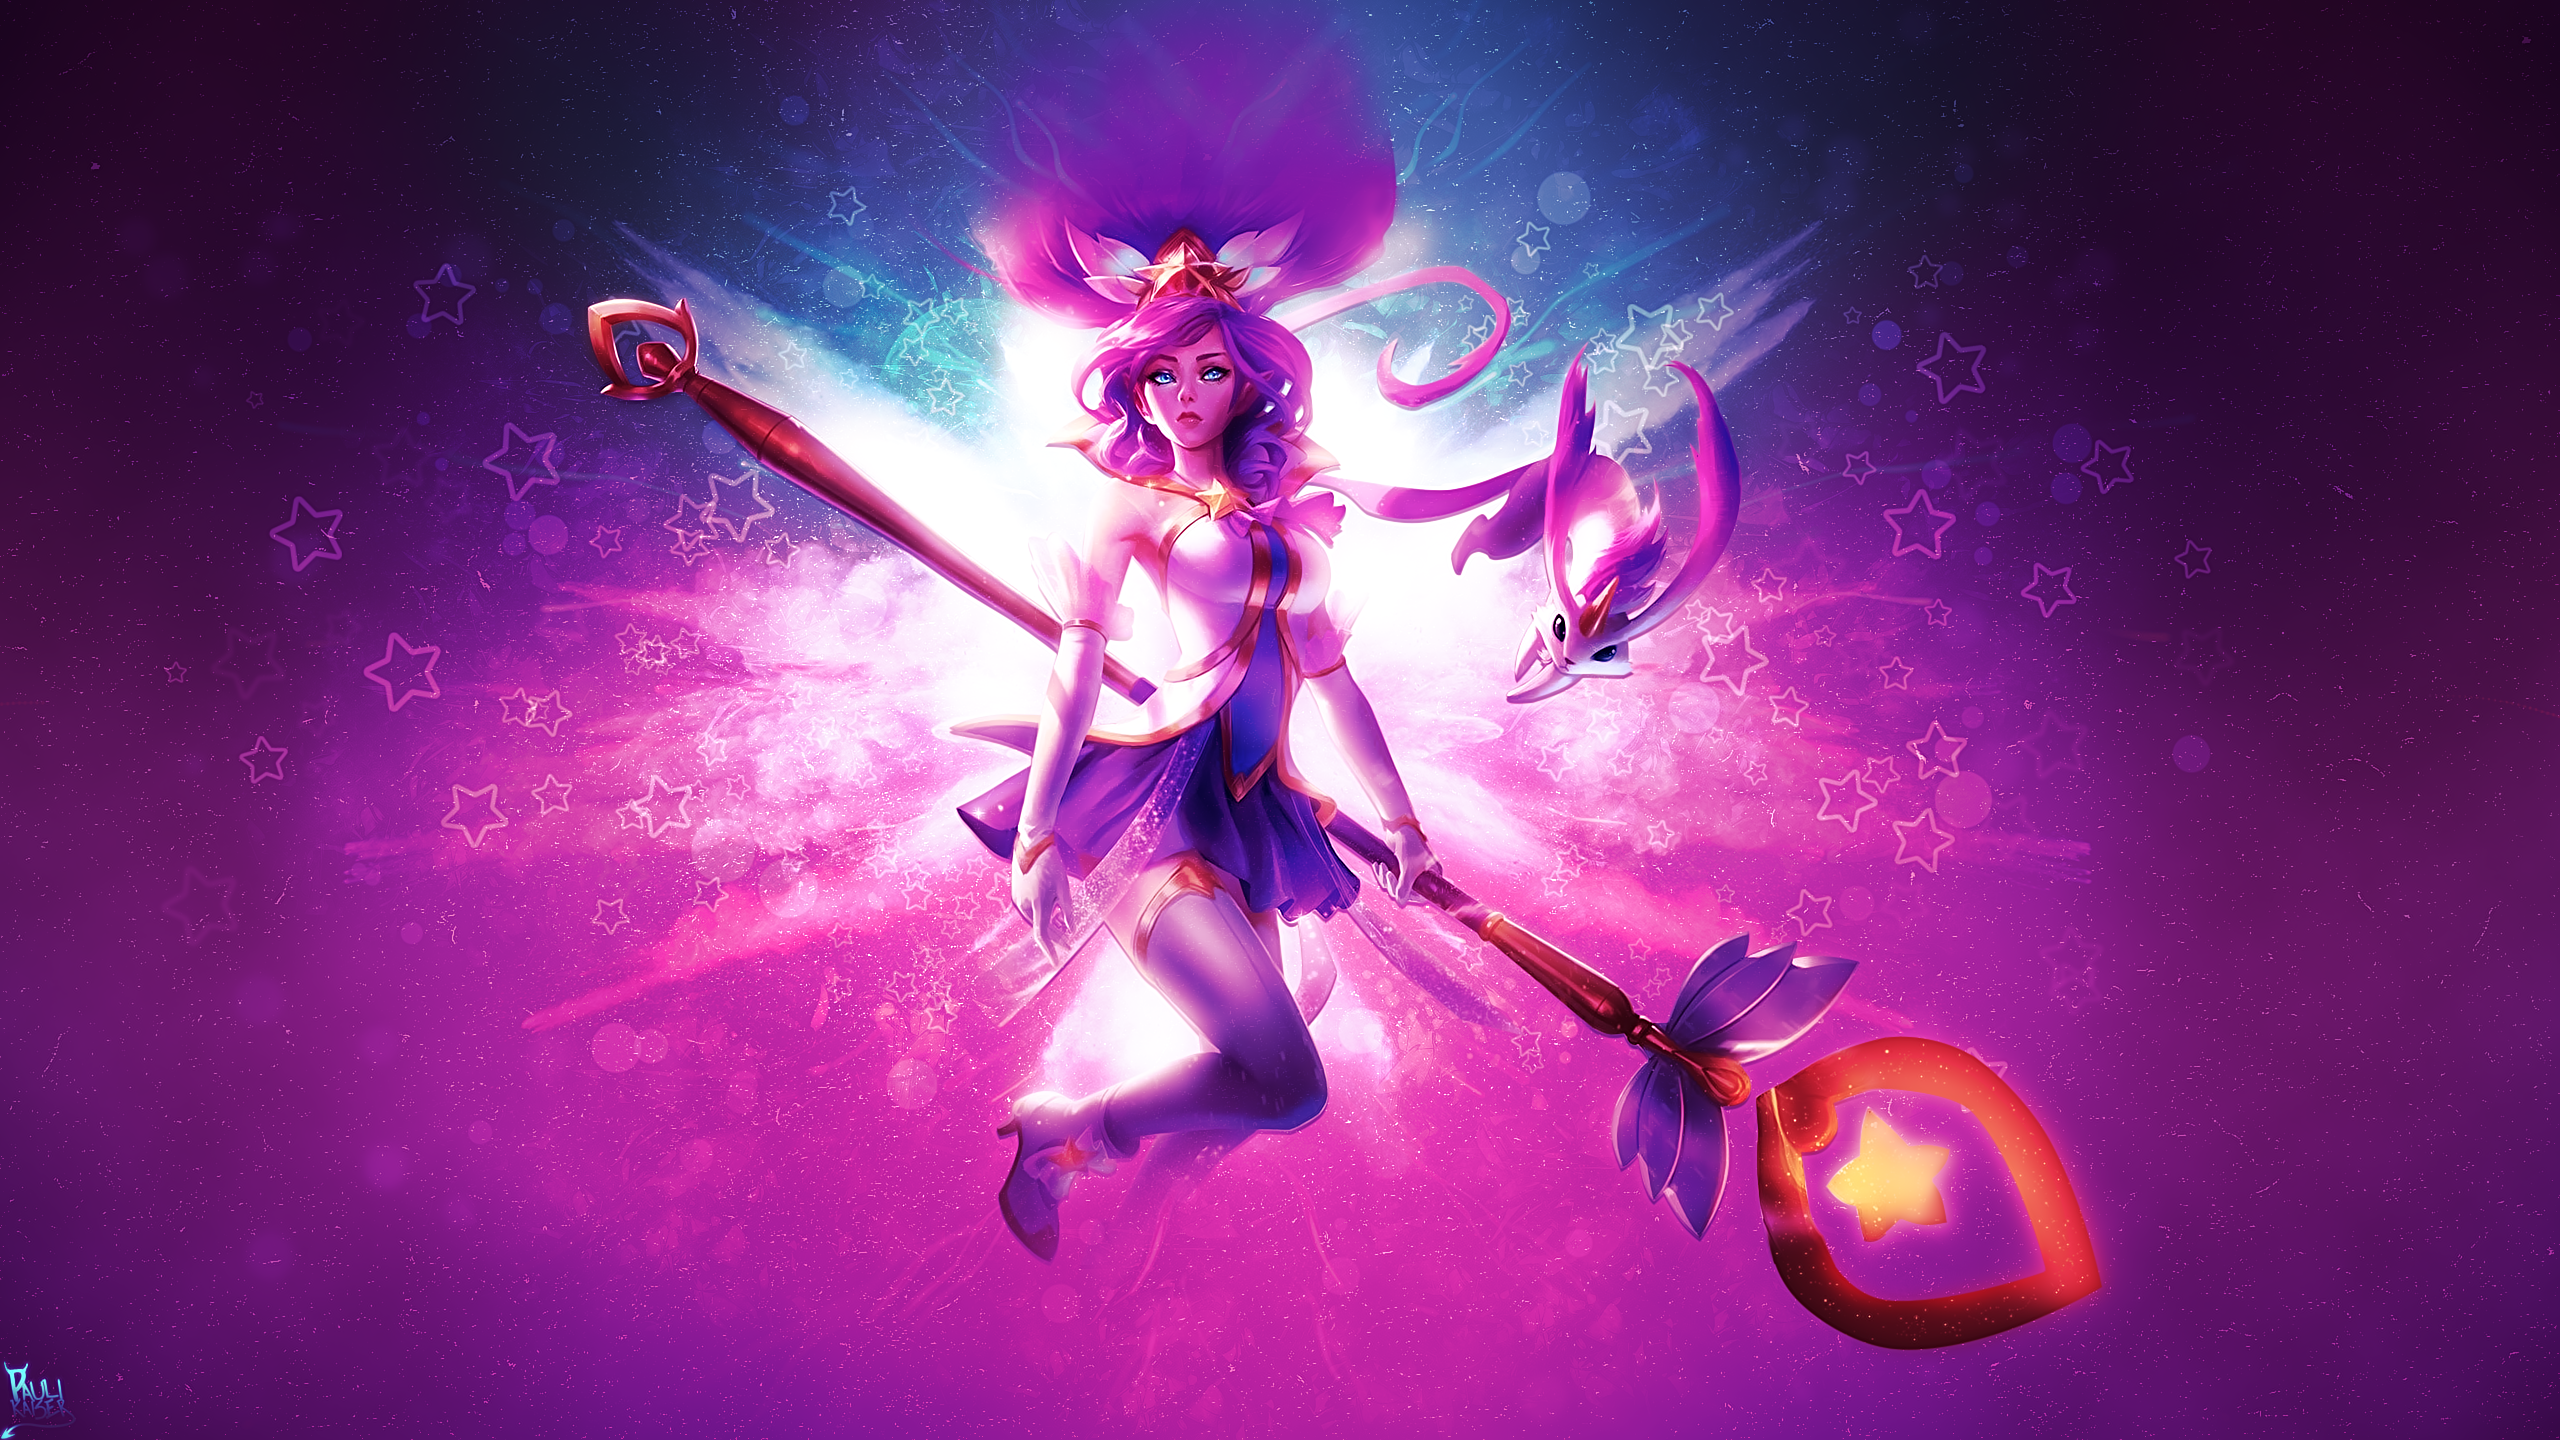 Star Guardian Janna Lolwallpapers